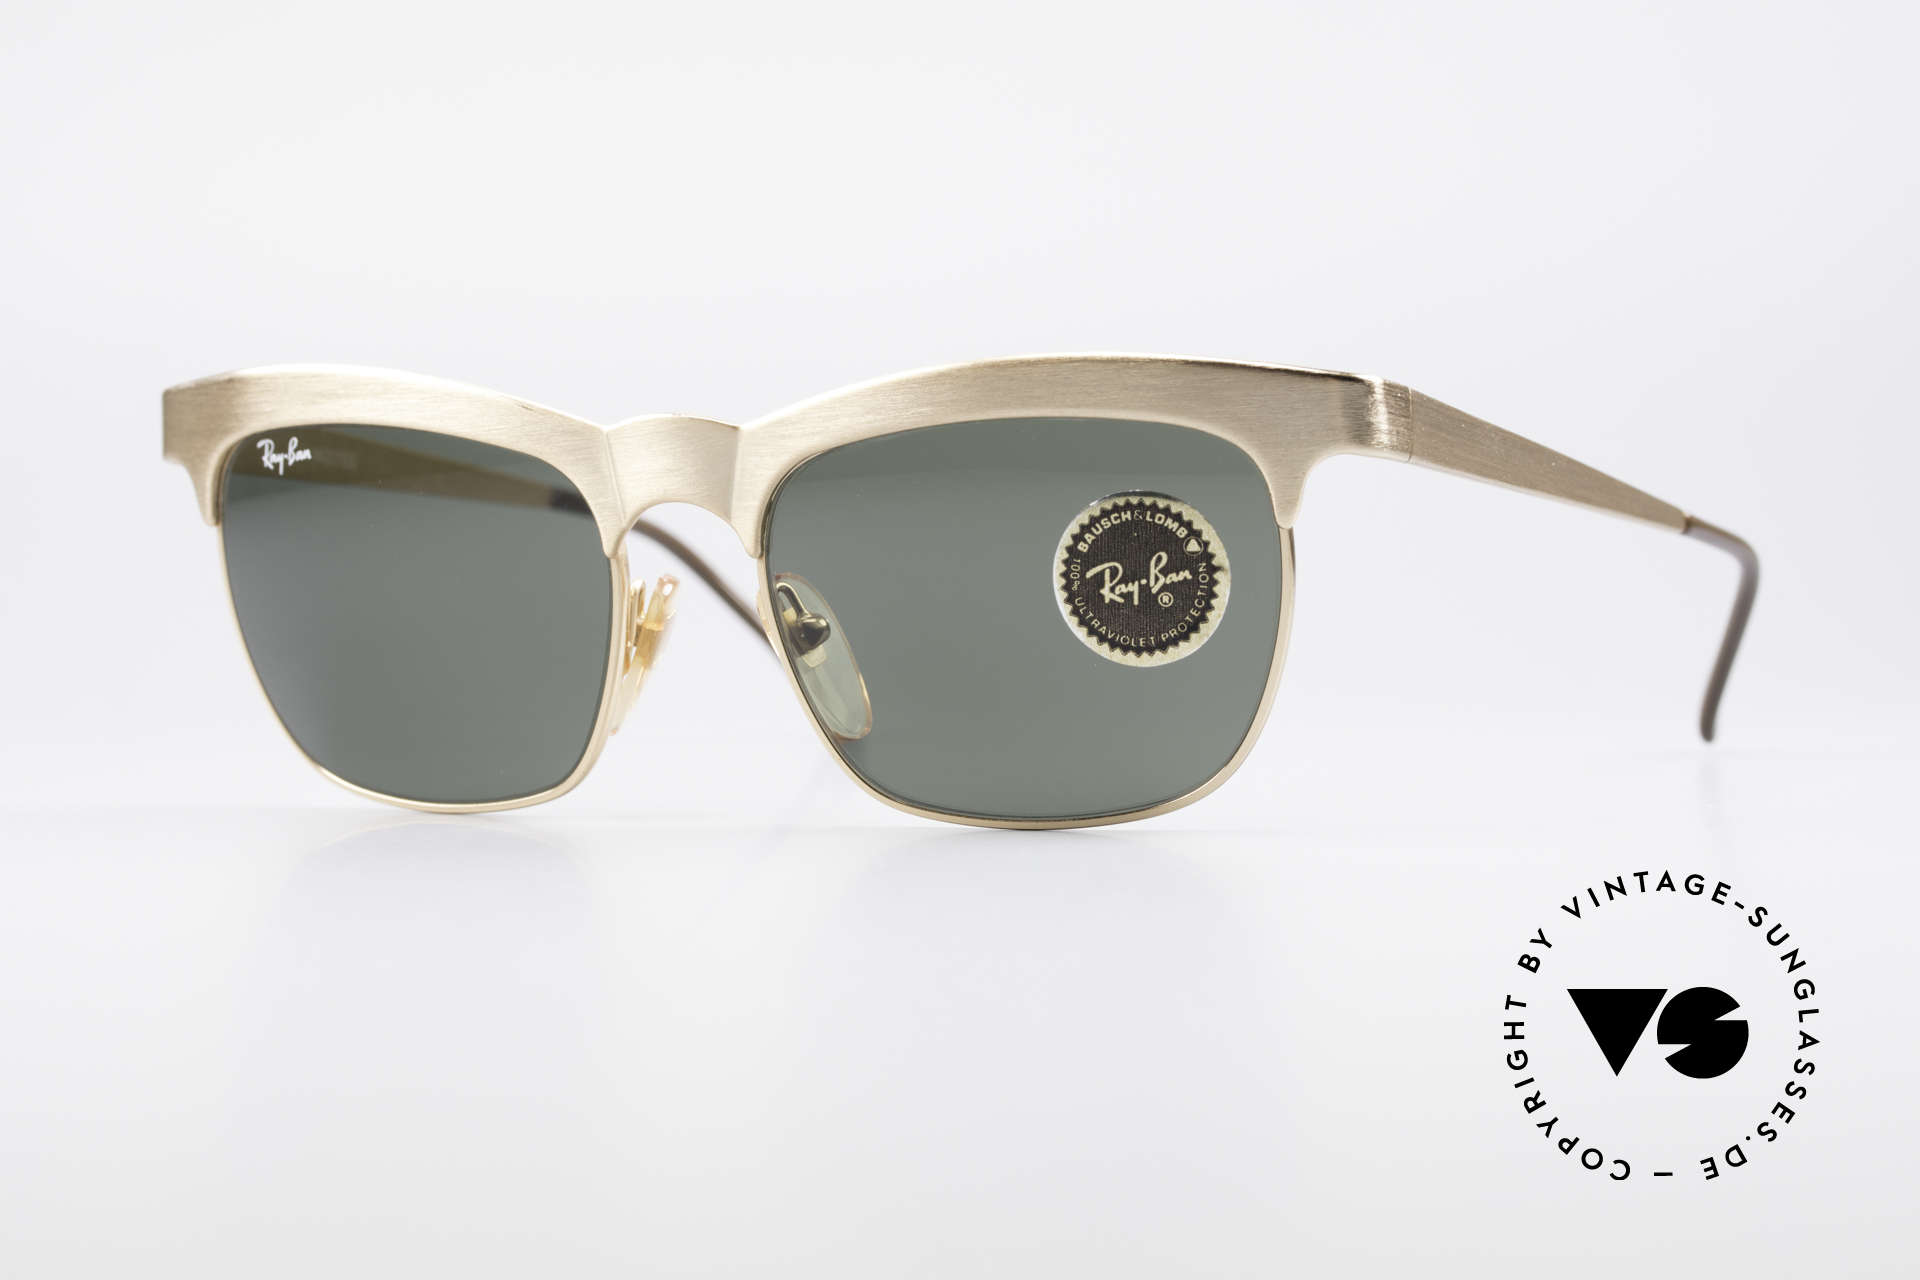 Ray Ban Nuevo 90's B&L Sunglasses W0755, interesting Ray-Ban design of the early 1990's, Made for Men and Women